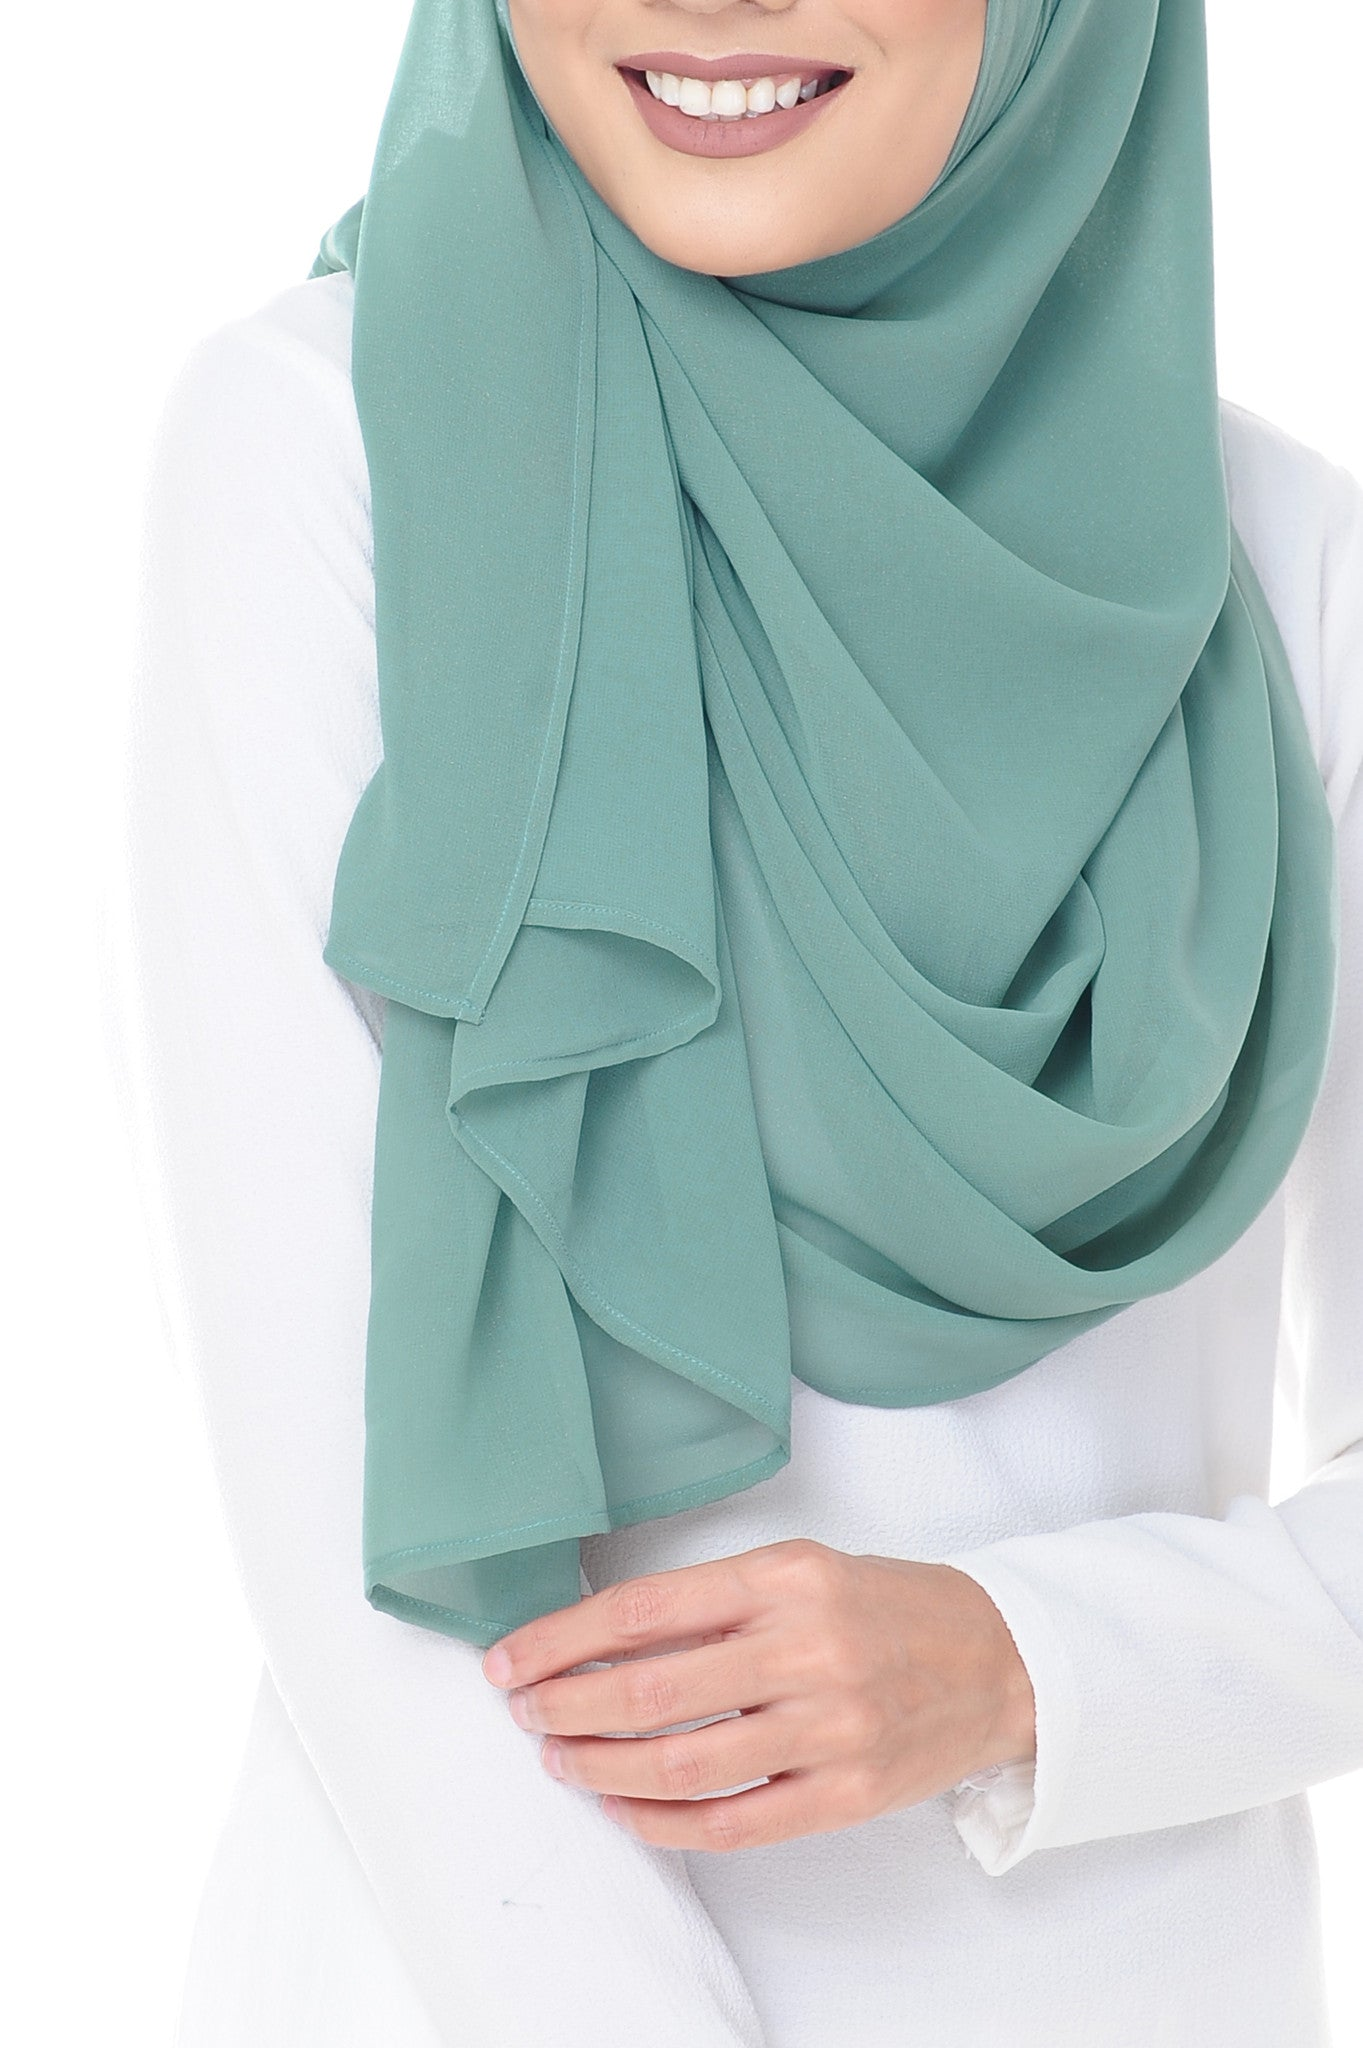 Marcella Instant Scarf in Aqua Mint